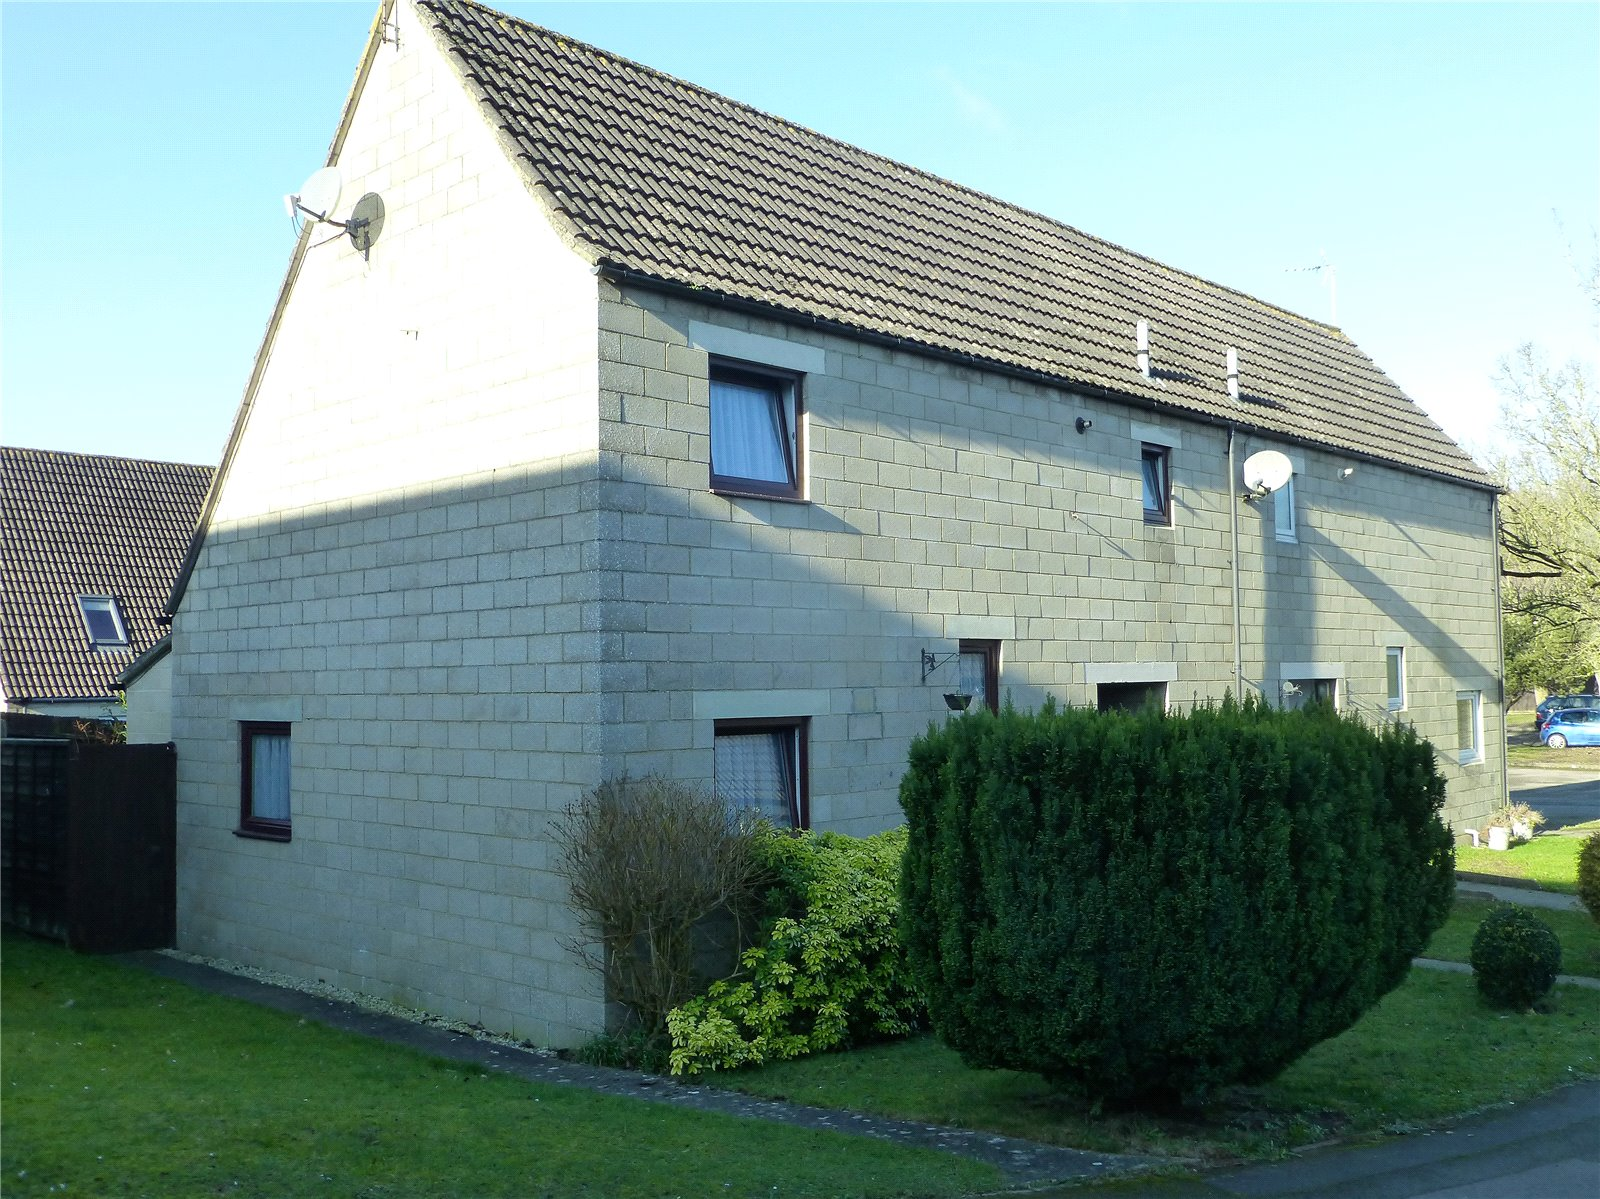 4 Bedrooms Property for sale in Fosse Close Cirencester GL7